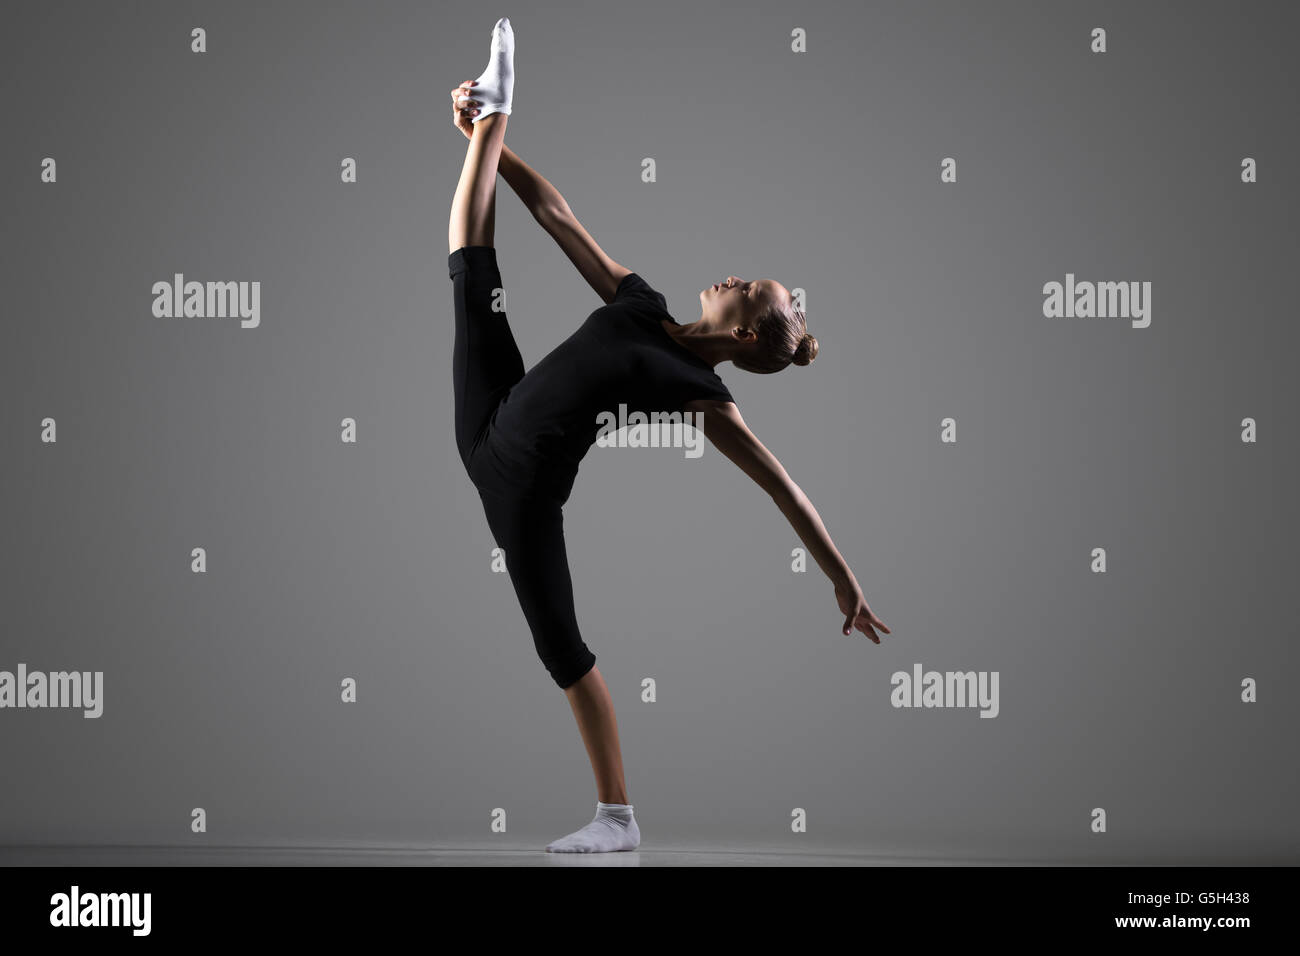 Beautiful cool young fit gymnast athlete woman in sportswear working out, dancing, doing balance rhythmic gymnastics - Stock Image